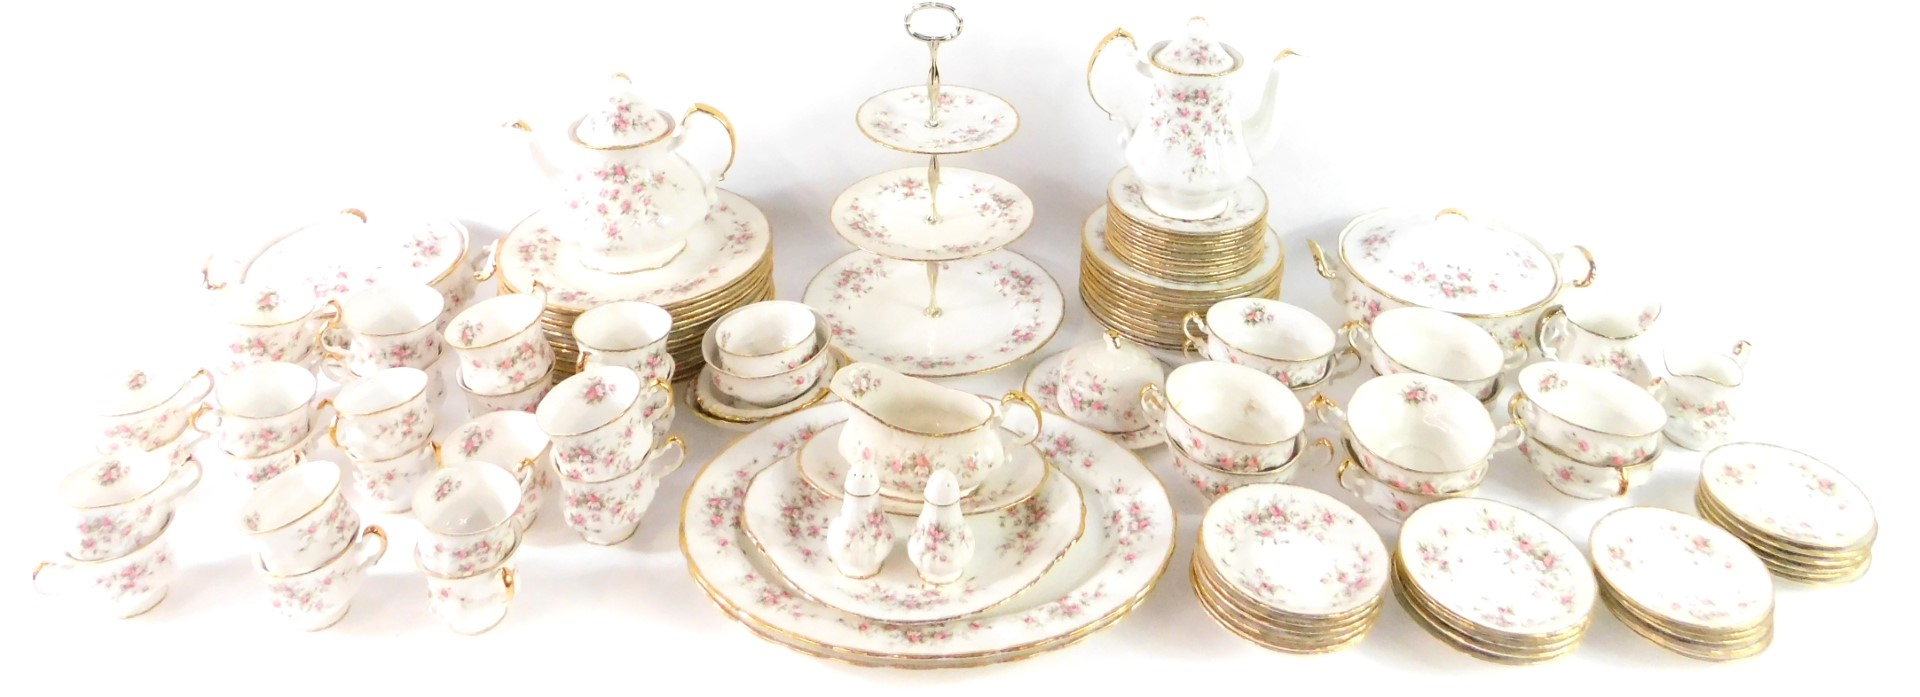 Lot 39 - A Paragon porcelain dinner tea and coffee service decorated in the Victoriana Rose pattern,